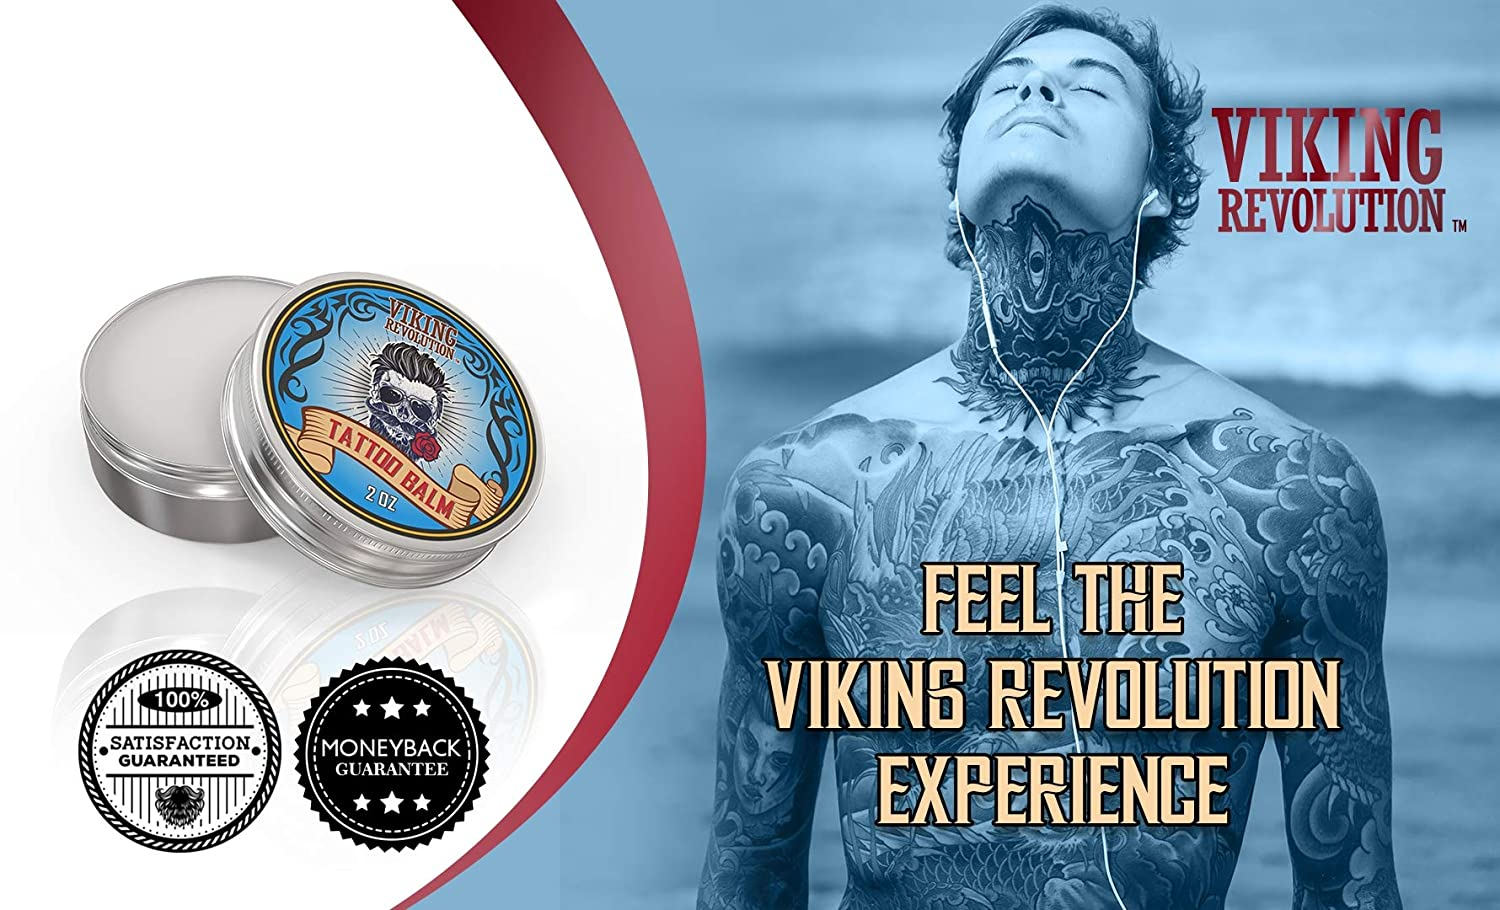 Amazon.com: Viking Revolution Vegan Tattoo Care Balm for Before, During & Post Tattoo – Safe, Natural Tattoo Aftercare Cream – Moisturizing Lotion to ...